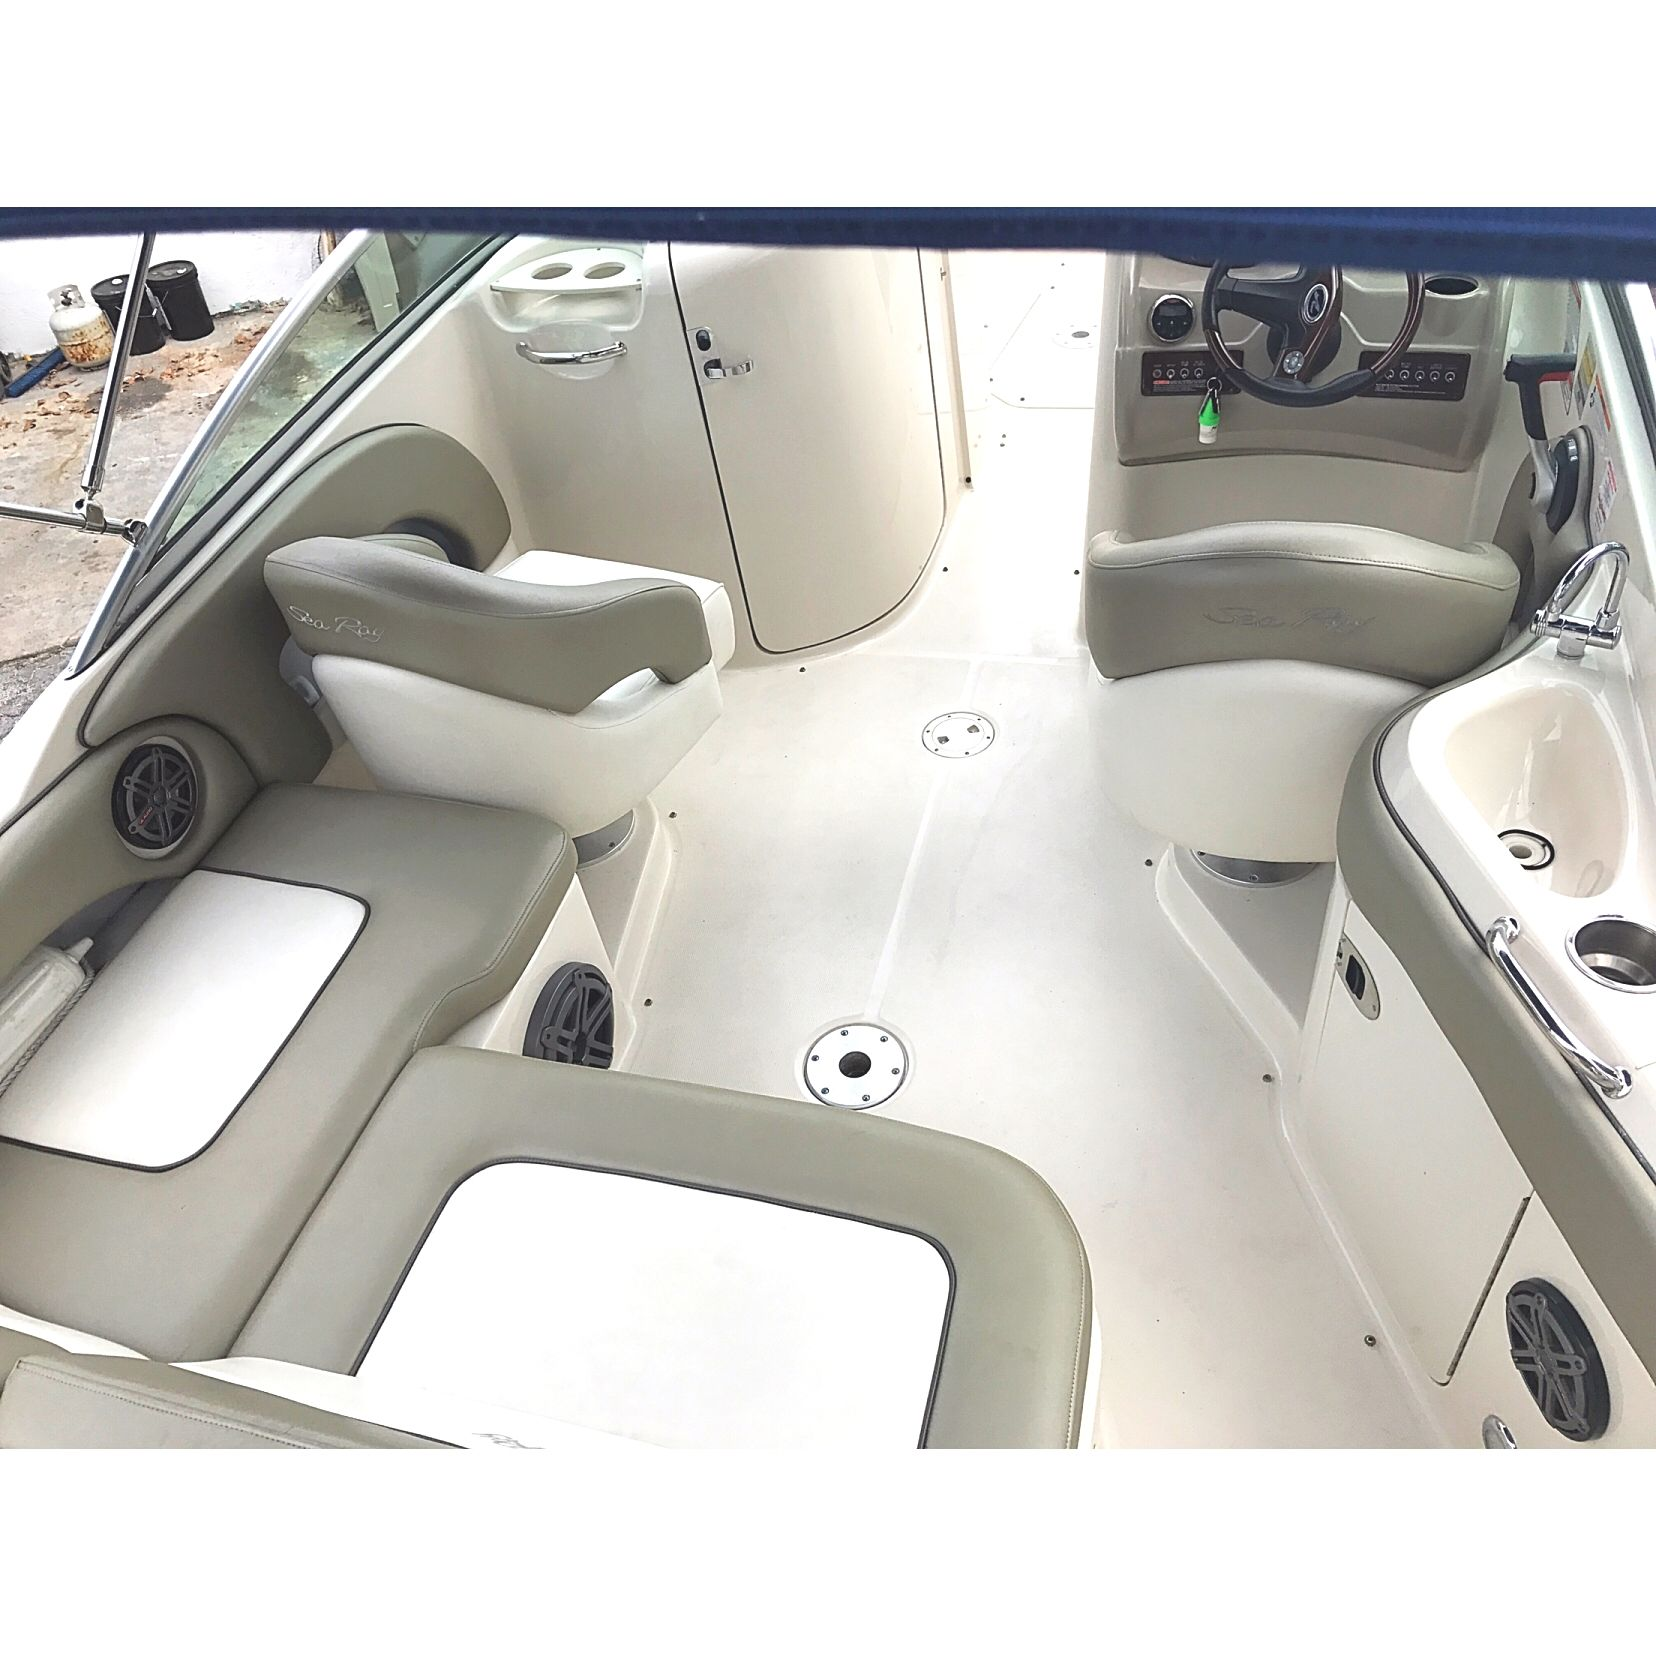 SeaRay 220 sundeck Featuring @jlaudioinc speakers and